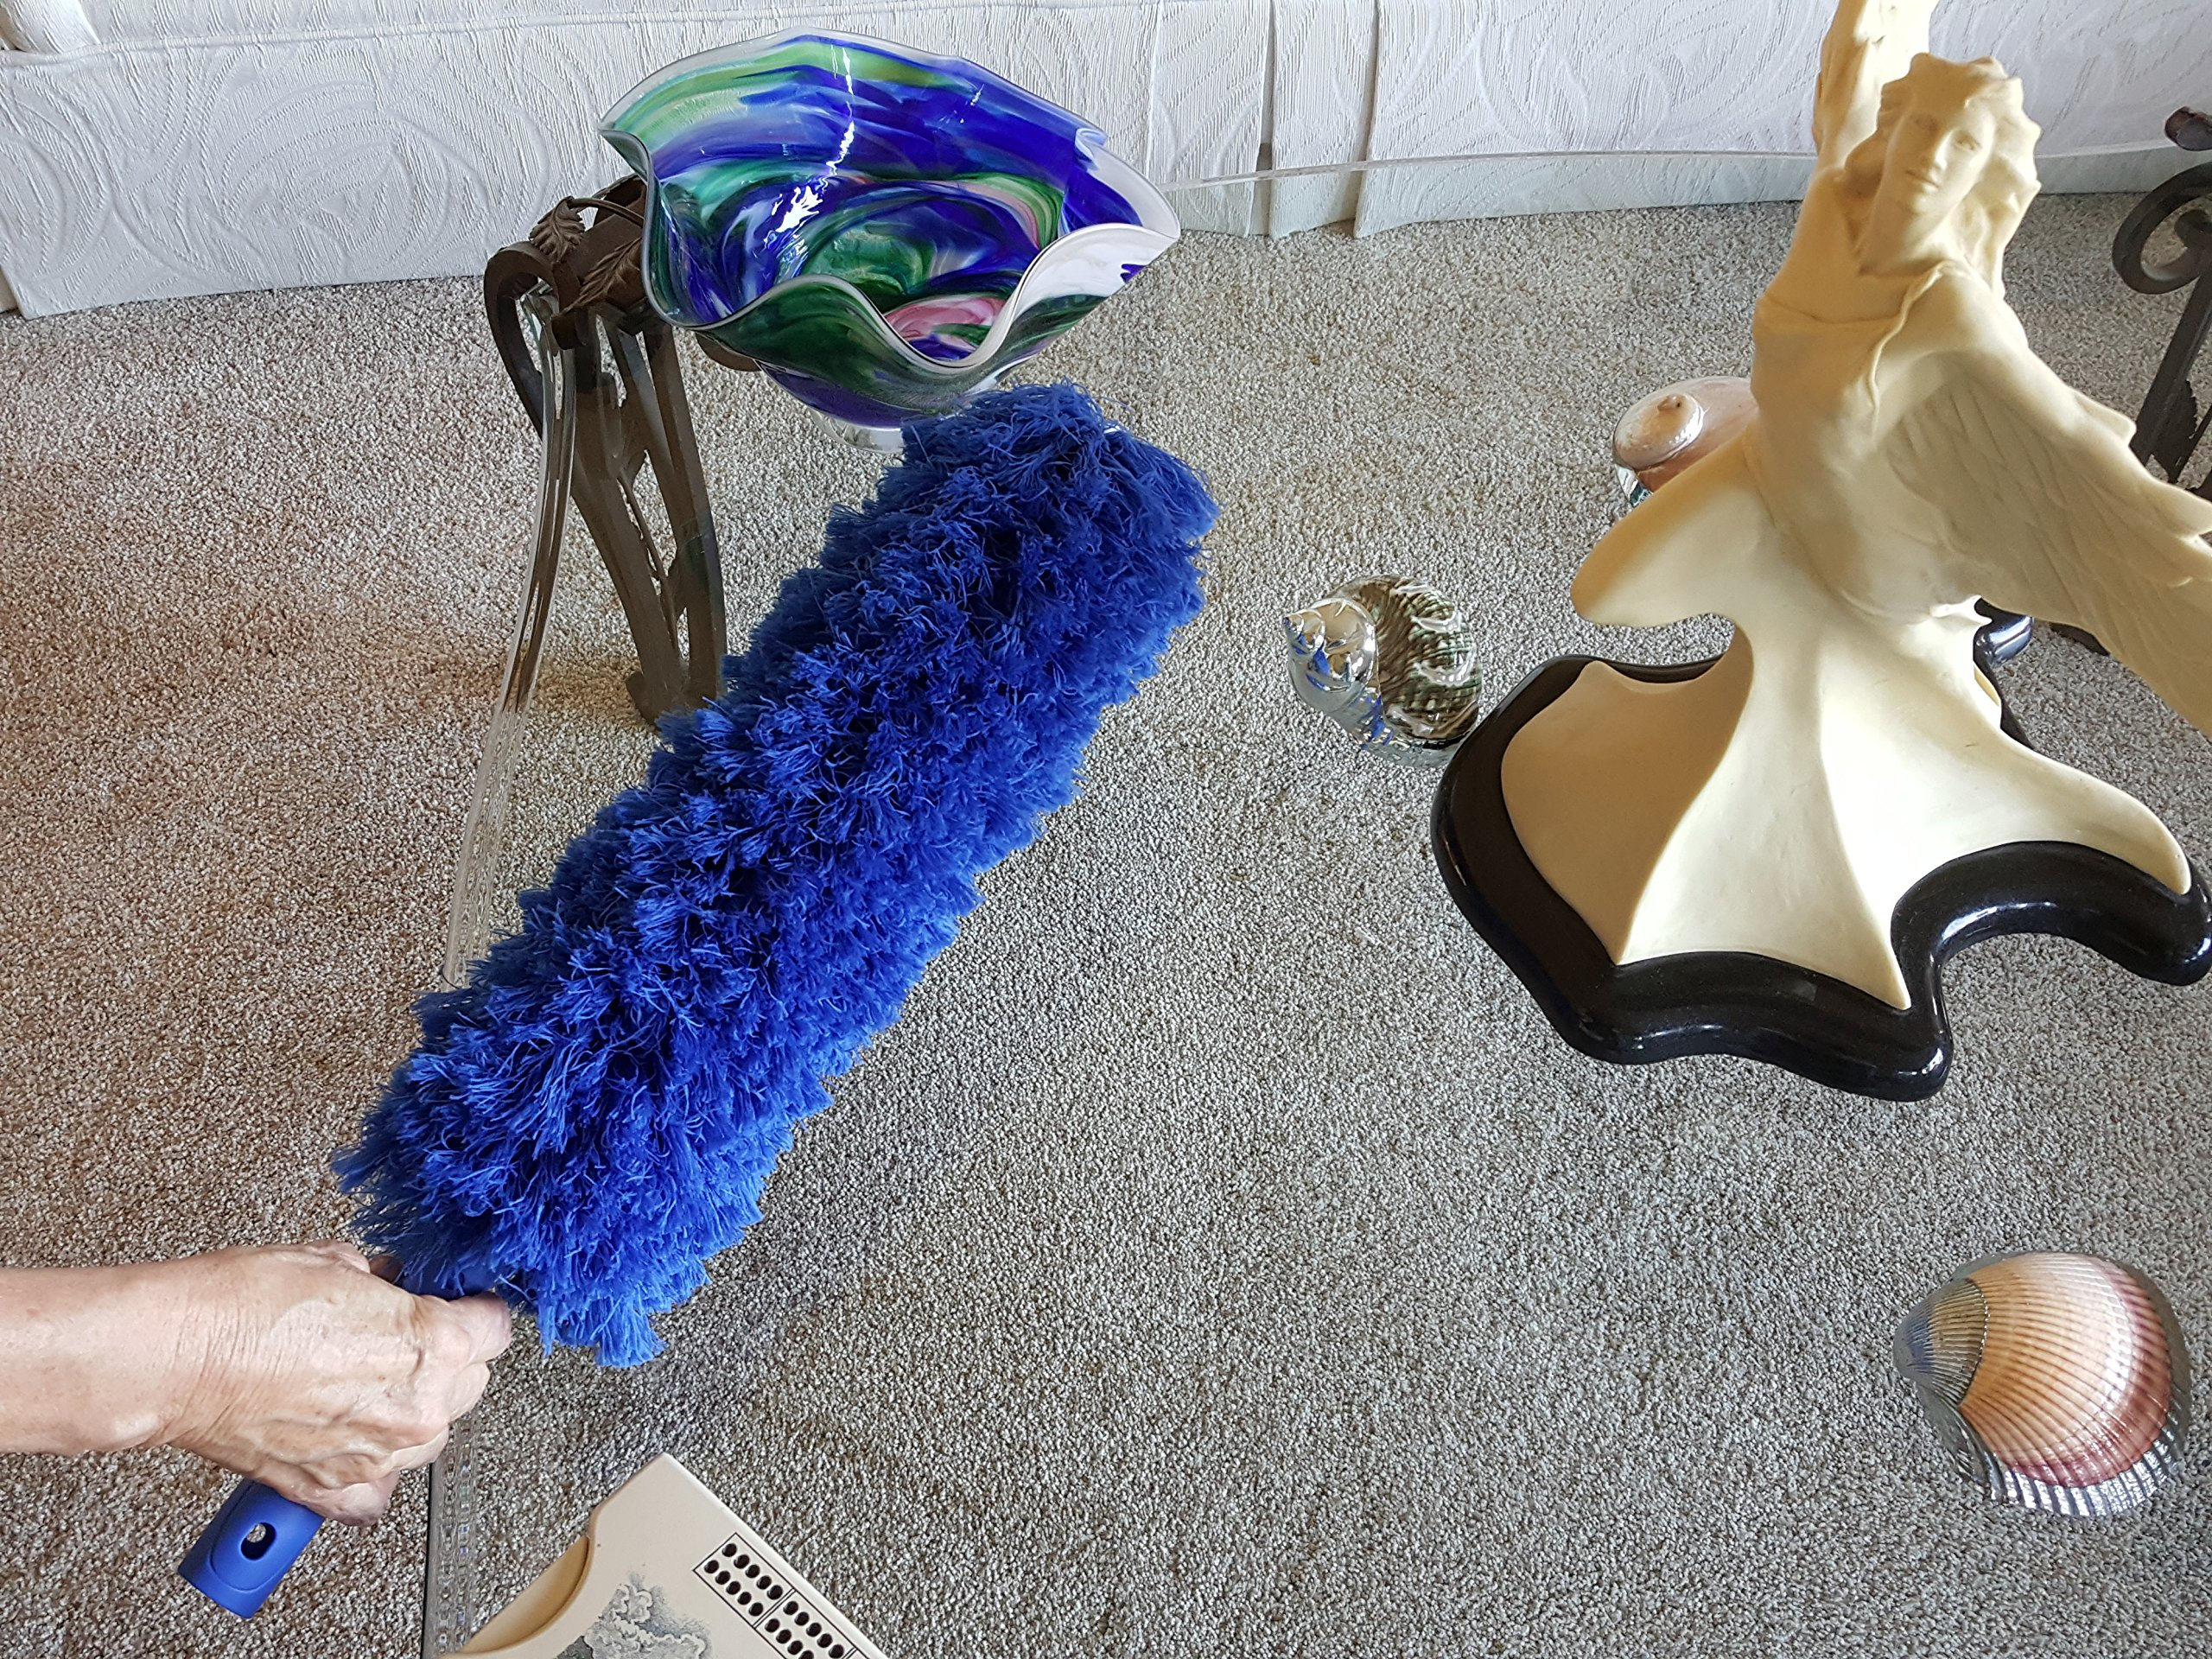 Extension Rod Blue Extension Duster, Extend 18-20 feet Cleaning High ...